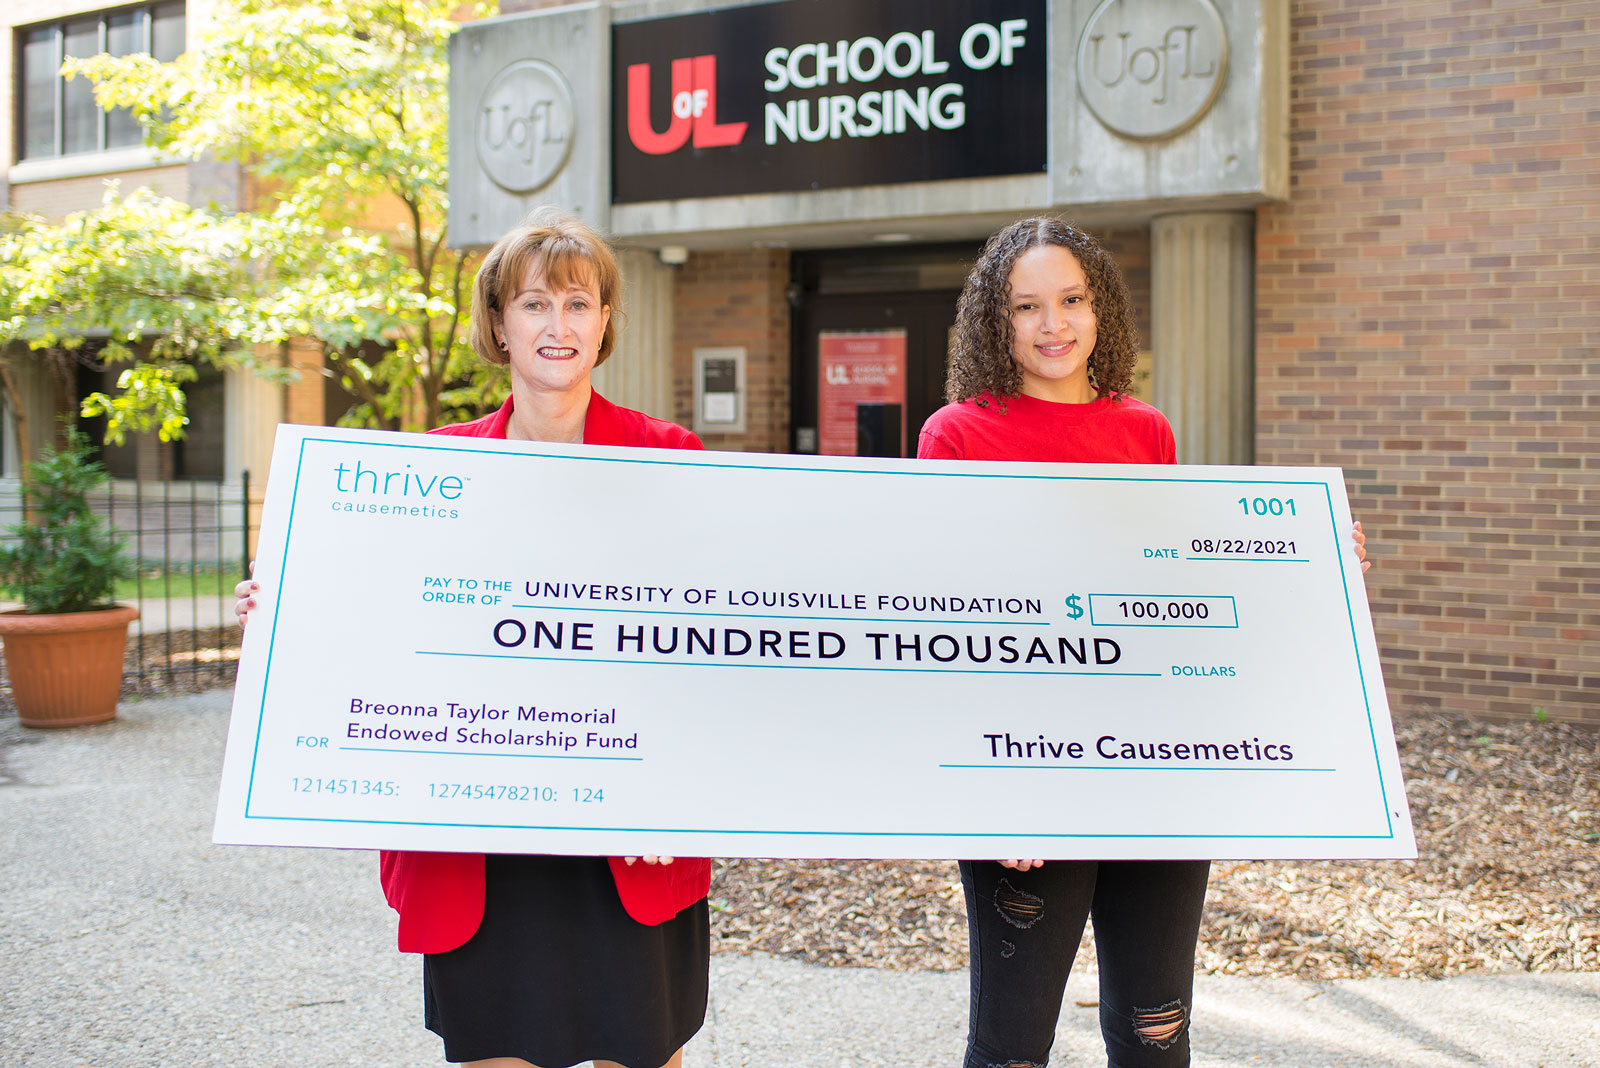 A wide angle picture of two women standing in front of the University of Louisville School of Nursing building. Freshman Kaelyn Goatley, has curly short brown hair and is wearing a red UofL shirt and black distressed jeans and School of Nursing Dean Sonya Hardin has short reddish brown hair and is wearing a red blazer and a black skirt. The pair are holding a check from Thrive Causemetics for the Breonna Taylor Memorial Endowed Scholarship fund in the amount of $100,000.